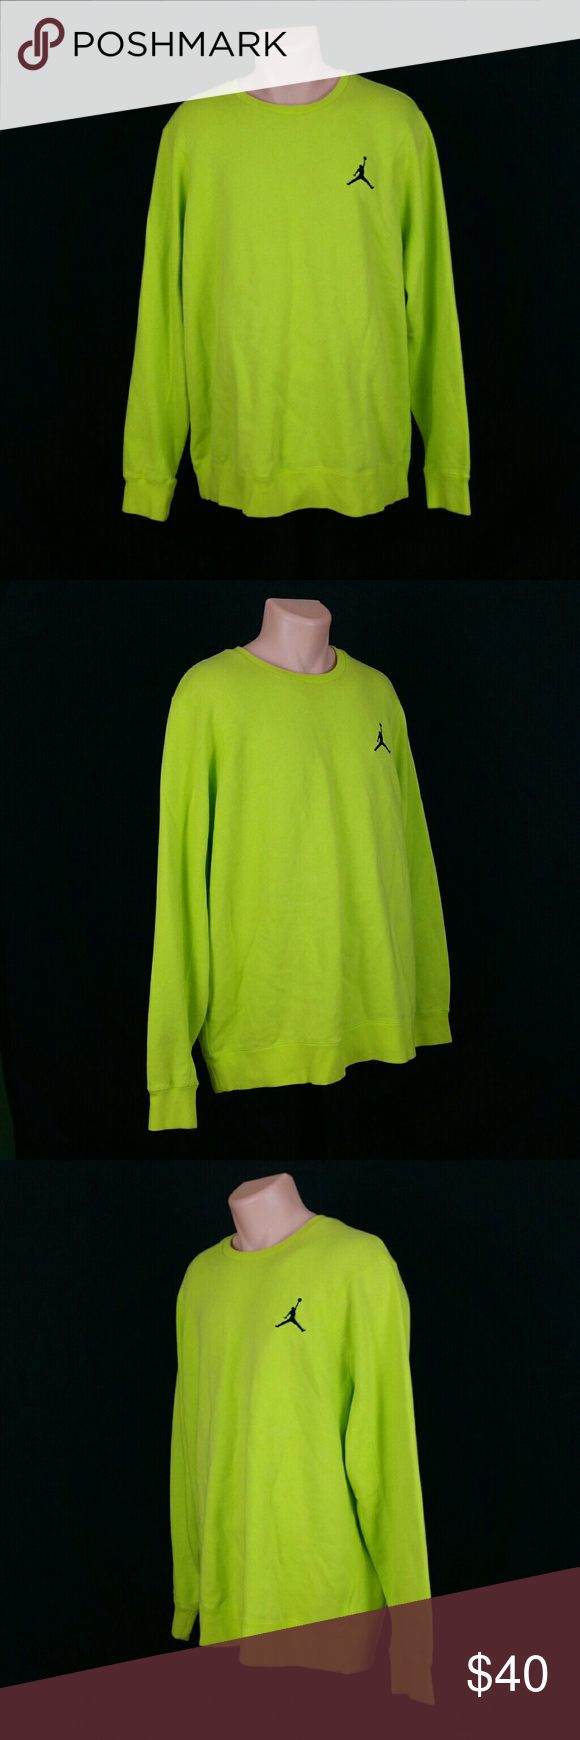 283a199164ef5e Air Jordan Men s Sweatshirt Lime Green Size XXL Great product as seen in  photos. 100% Authentic. Fast processing and shipping